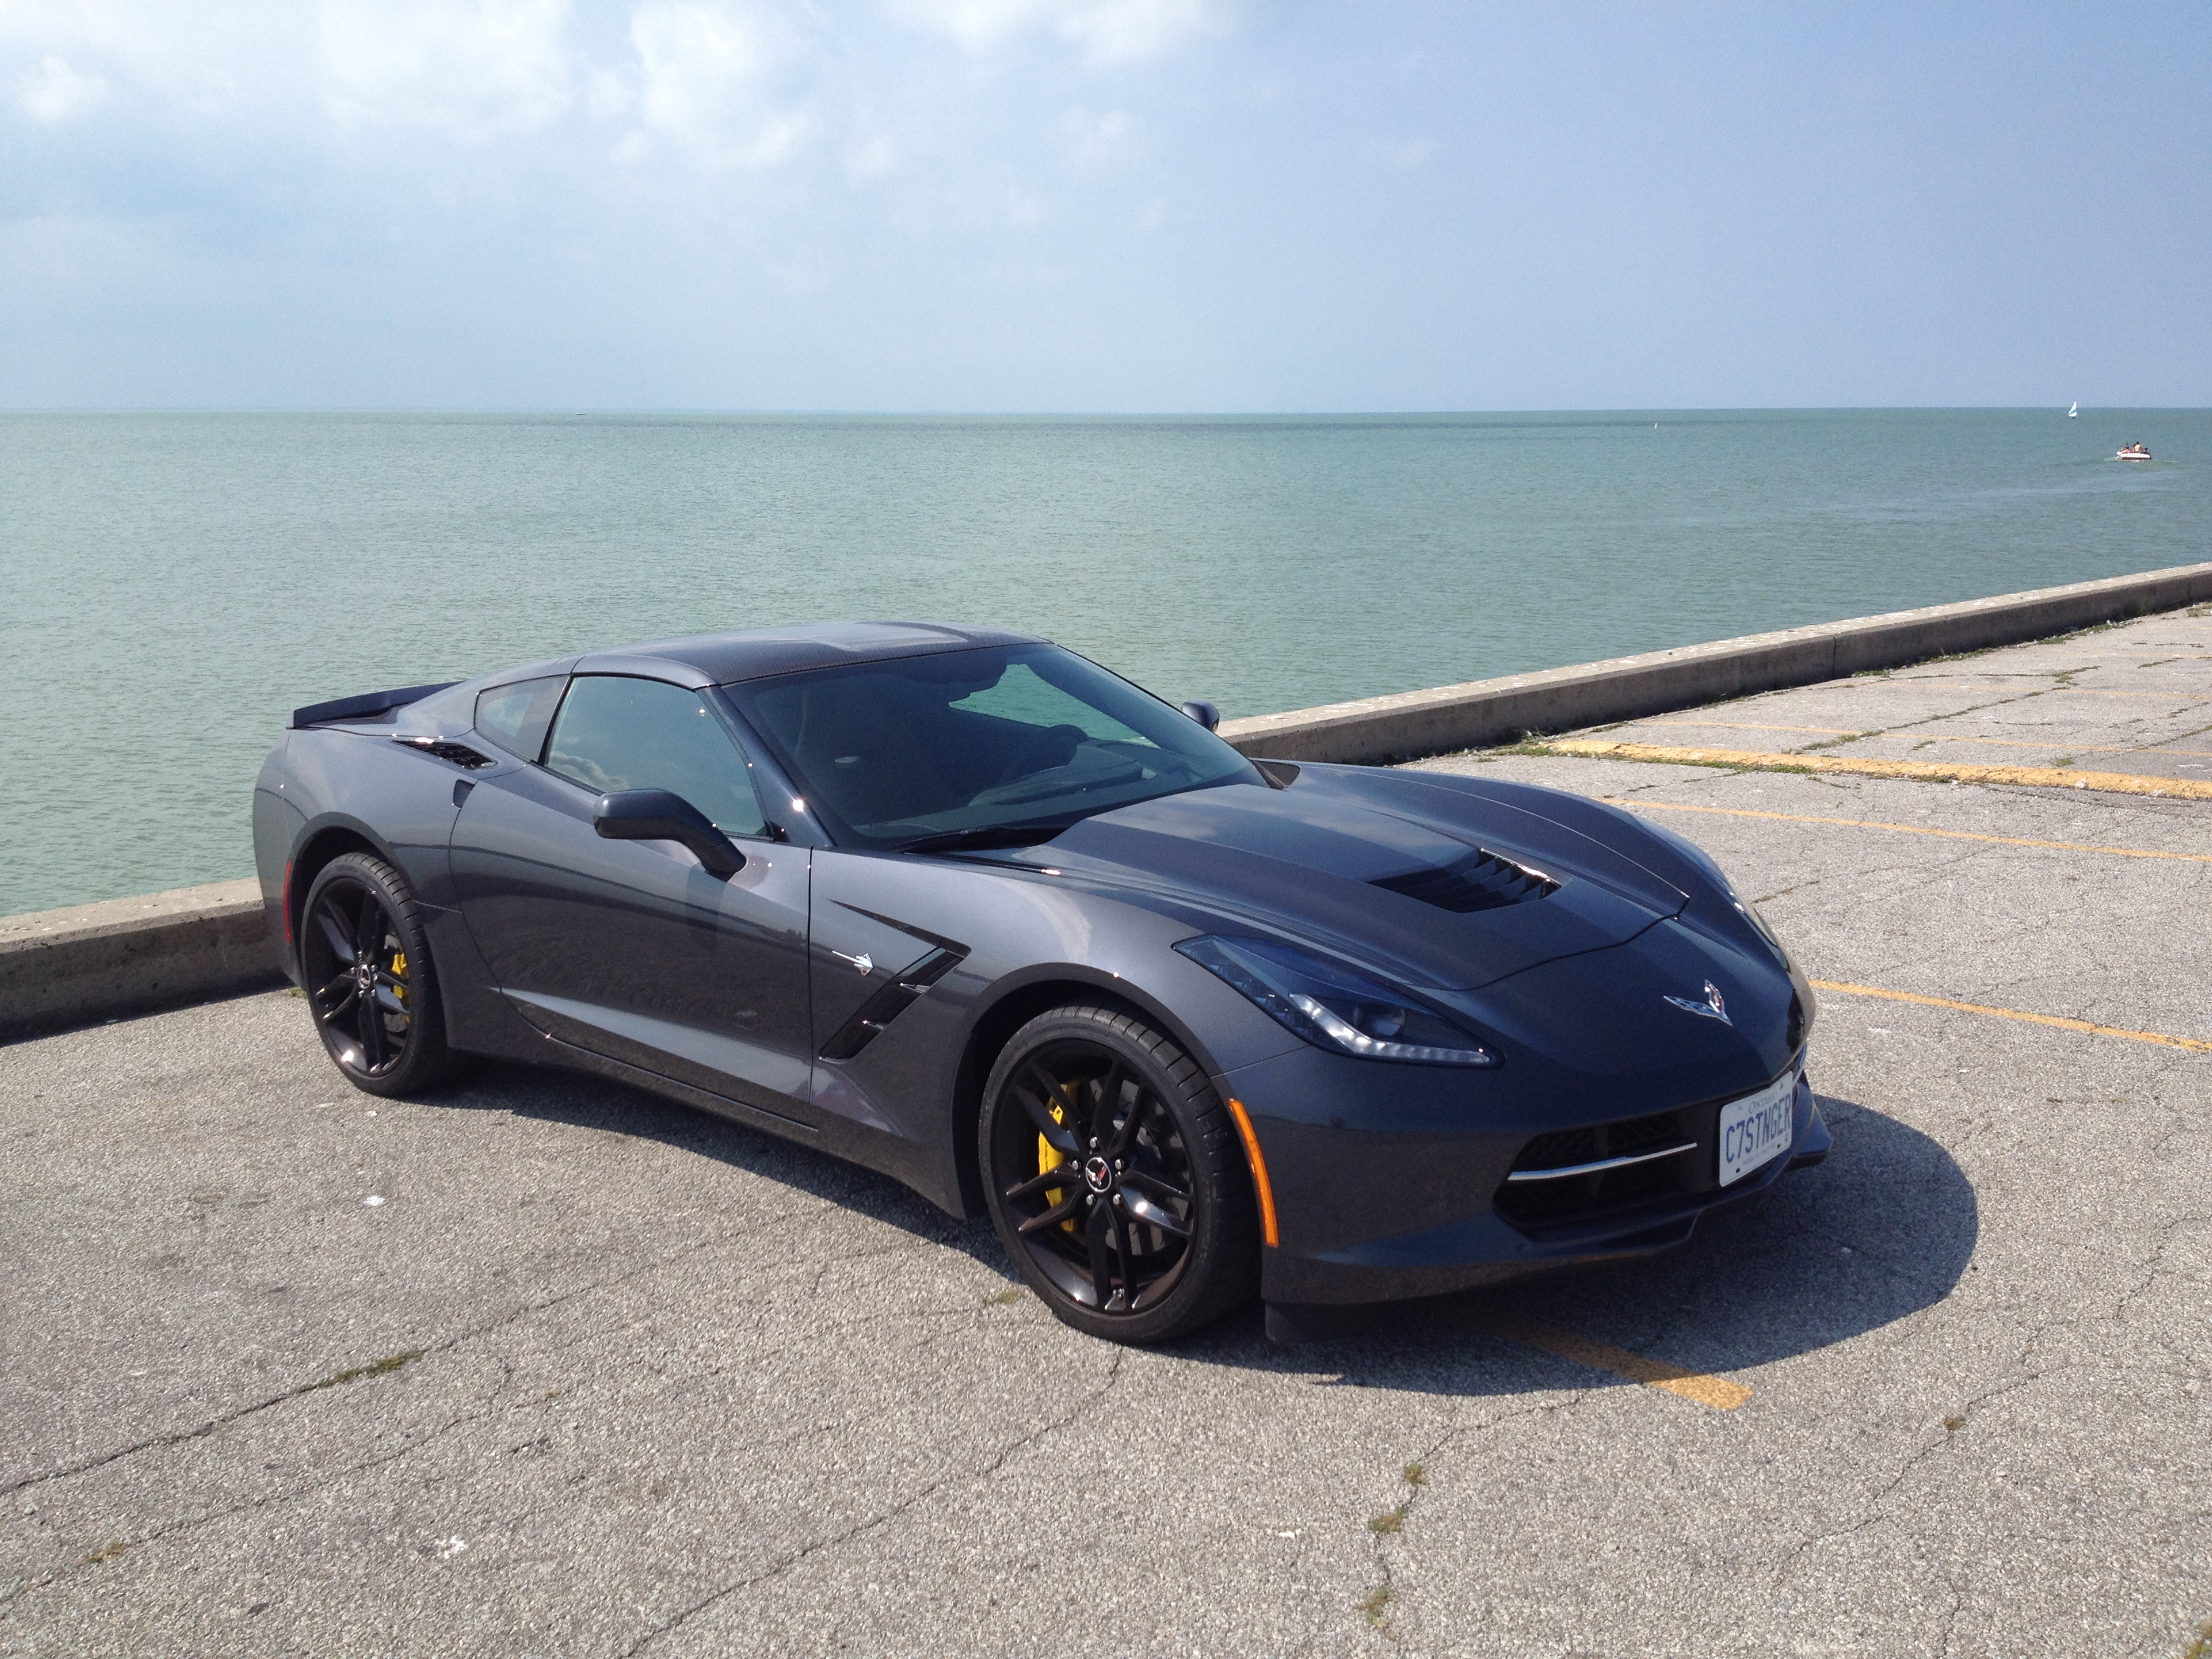 The Official Cyber Gray Stingray Corvette Photo Thread